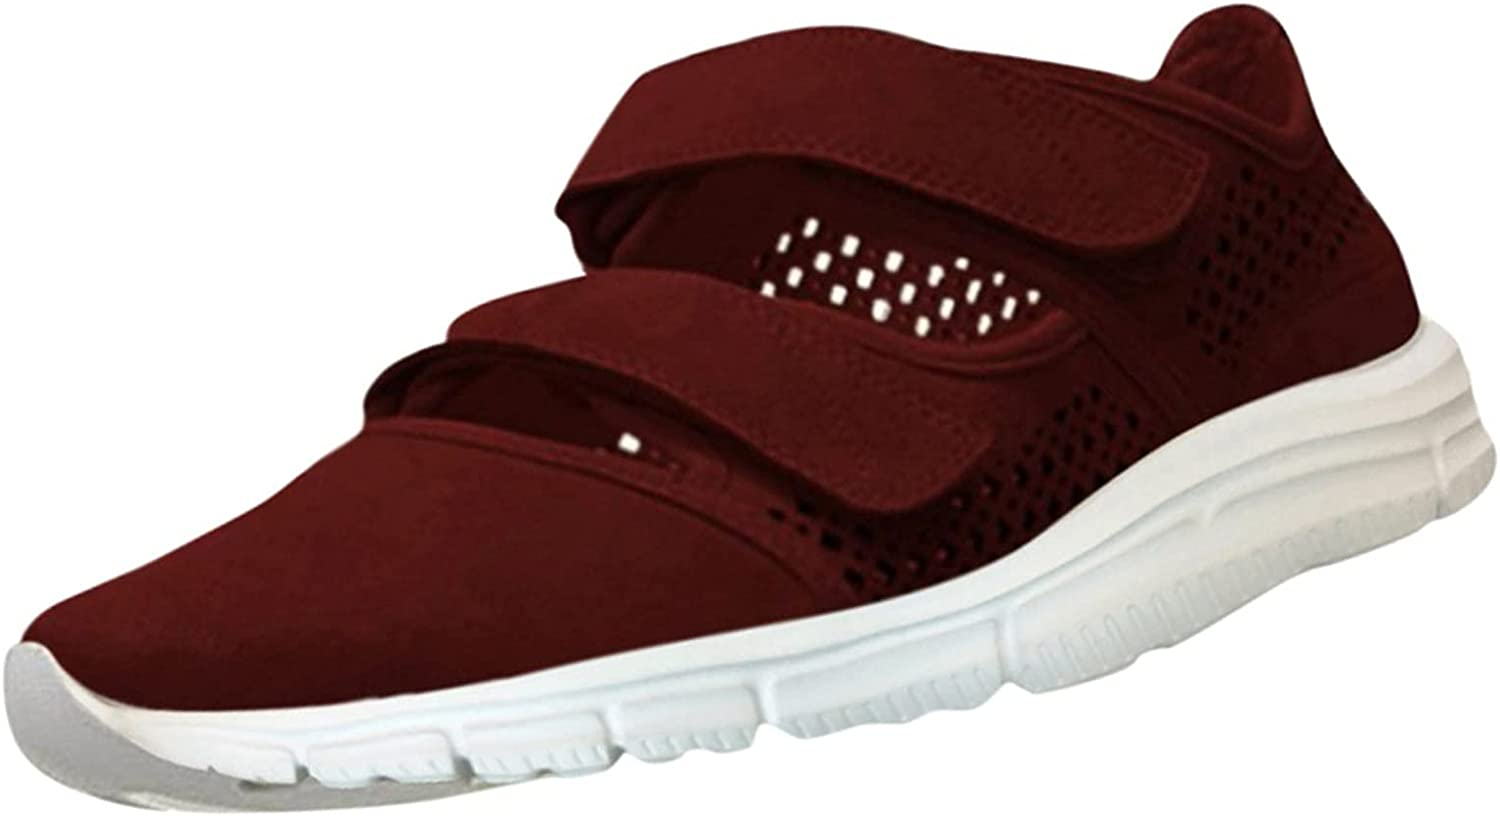 Johtae National products Womens Casual Shoes Breathable Genuine Outdoor Lei Slip-On Wedges